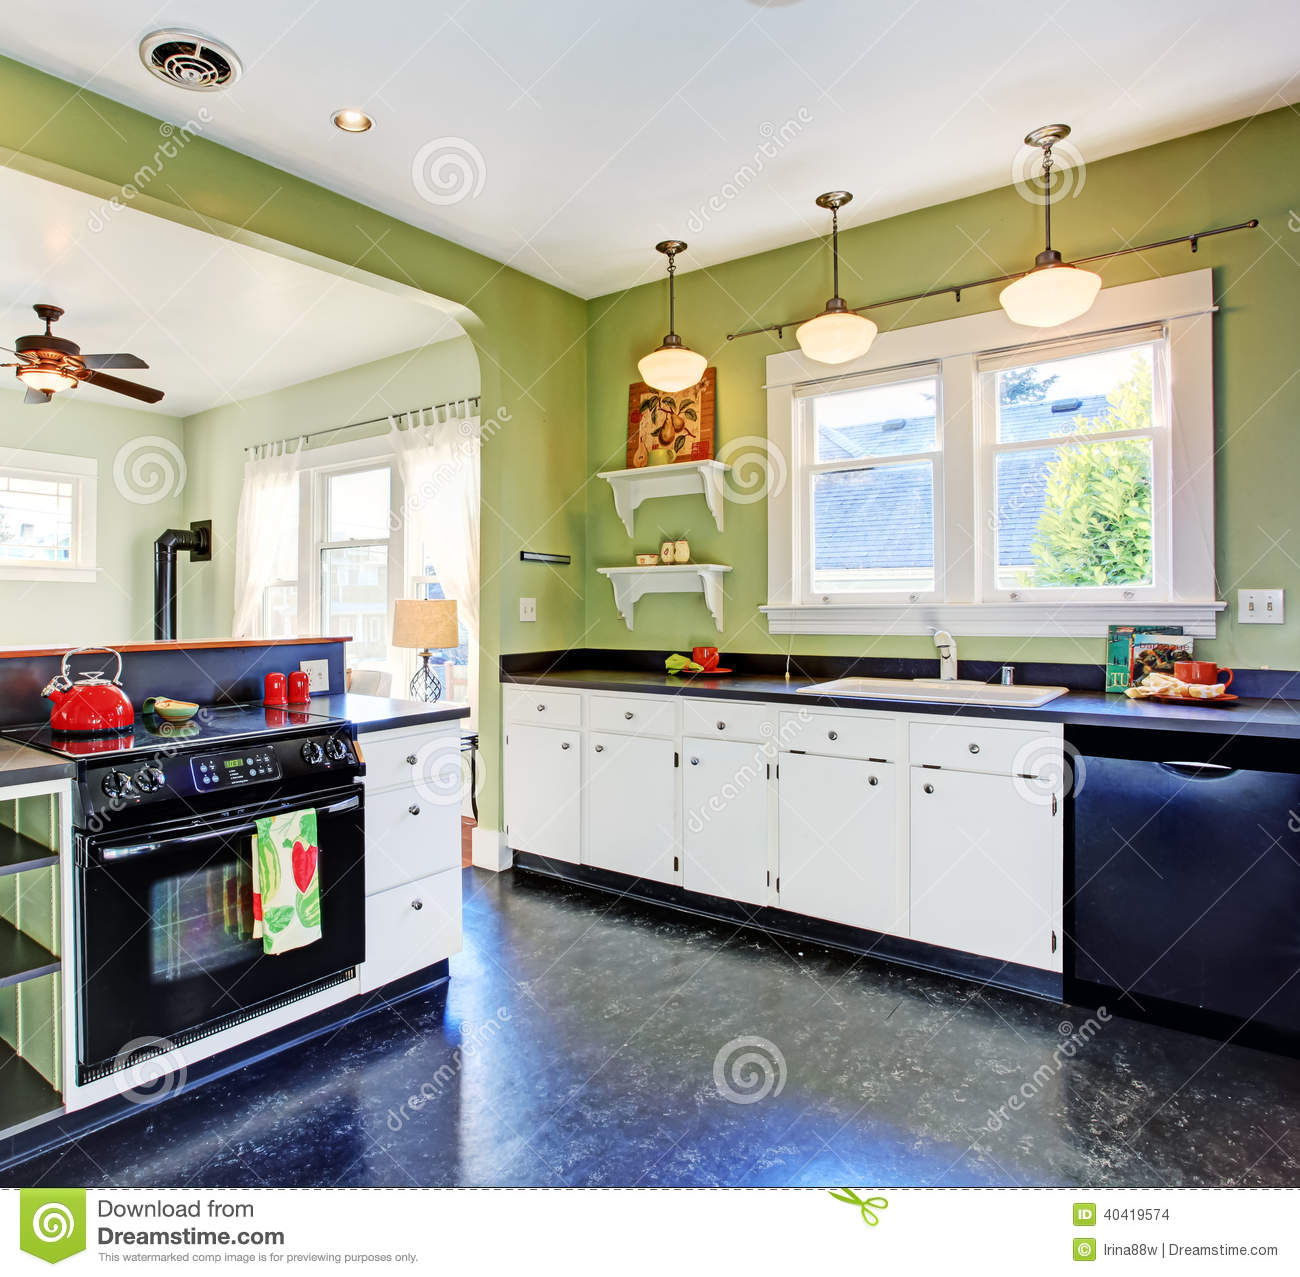 Luxury Kitchen Room Interior Bright Wooden Stock Vector: Kitchen Room Interior Stock Photo